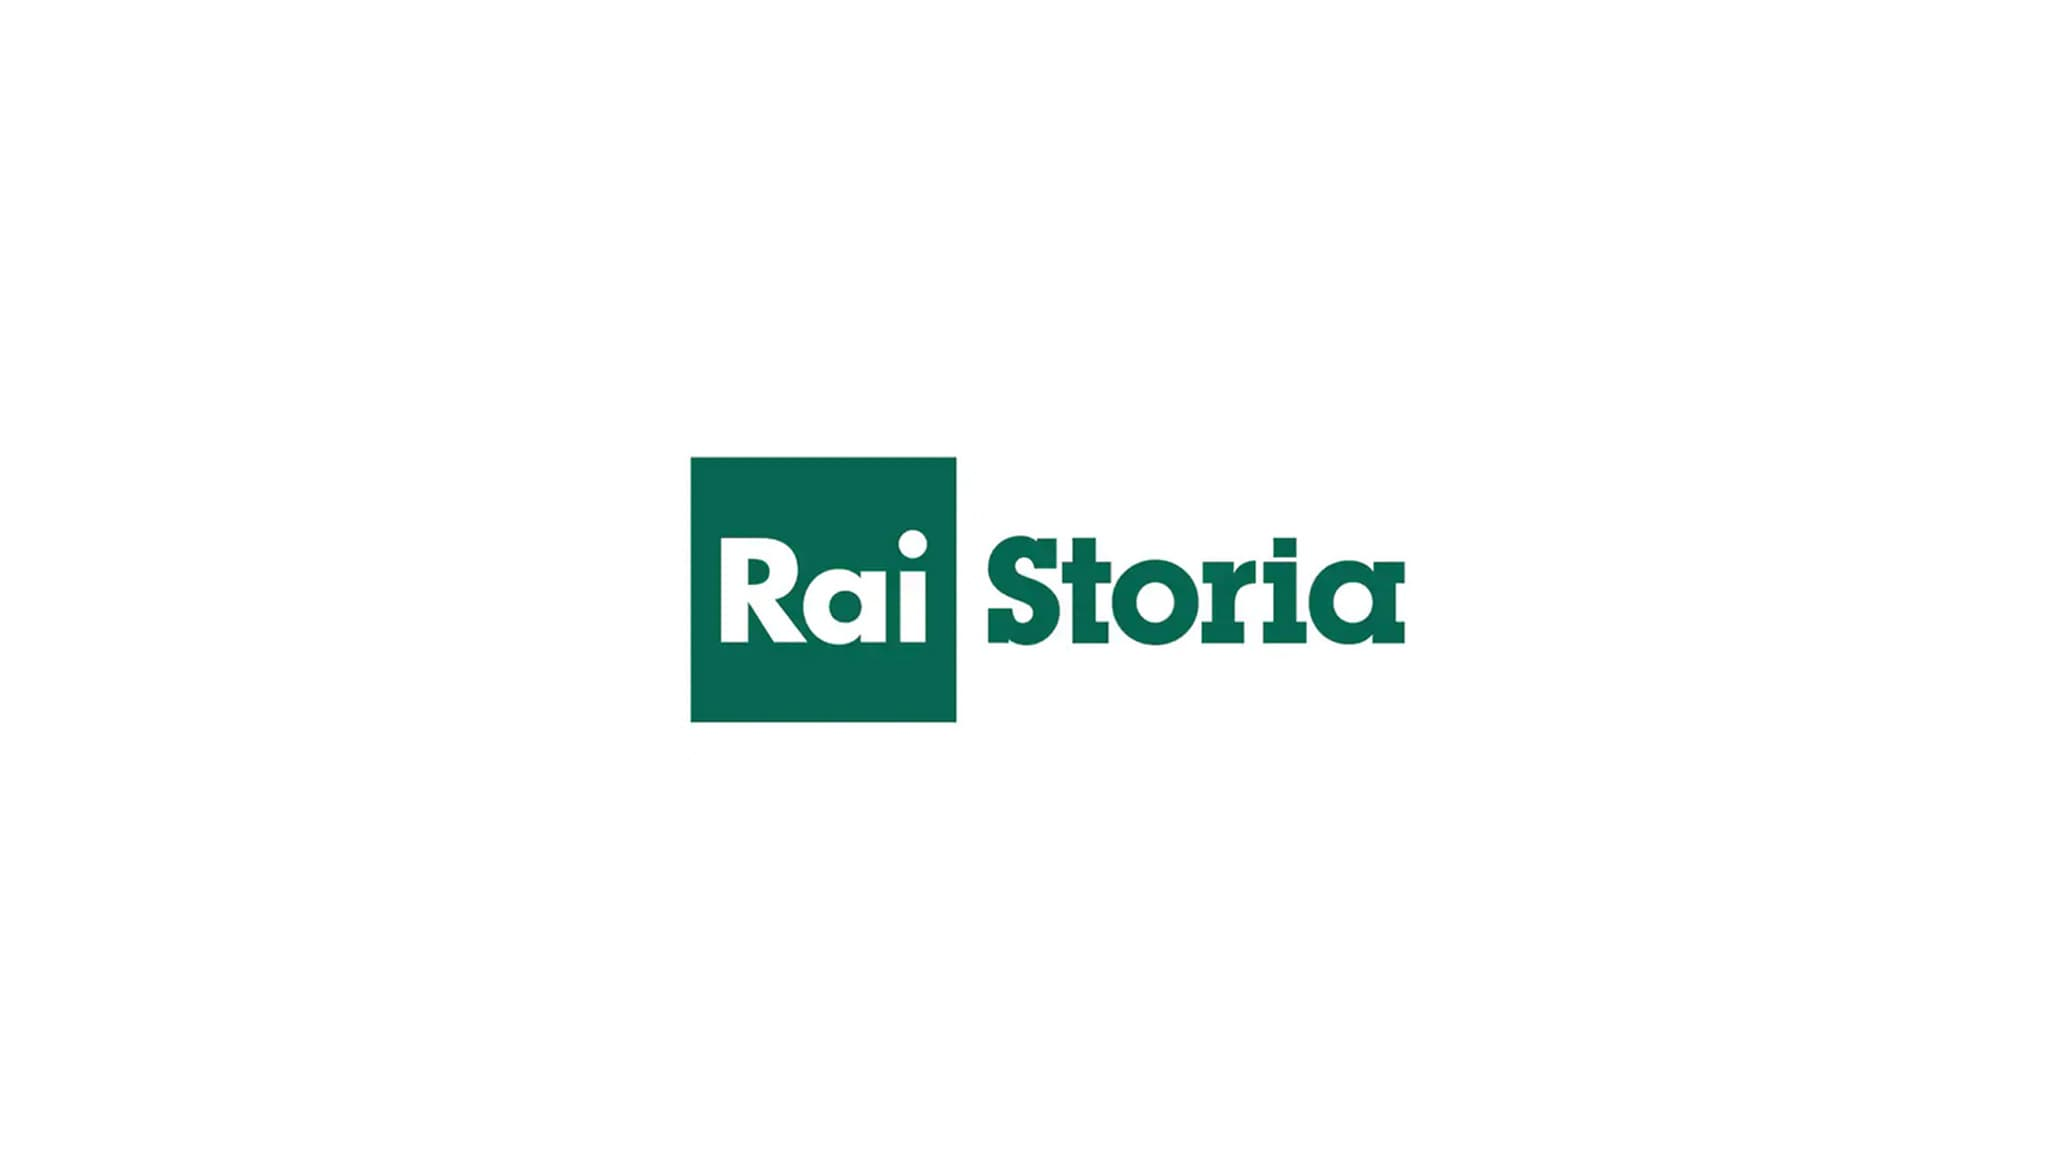 Rai Storia La guerra segreta p.3. Mafia Connection